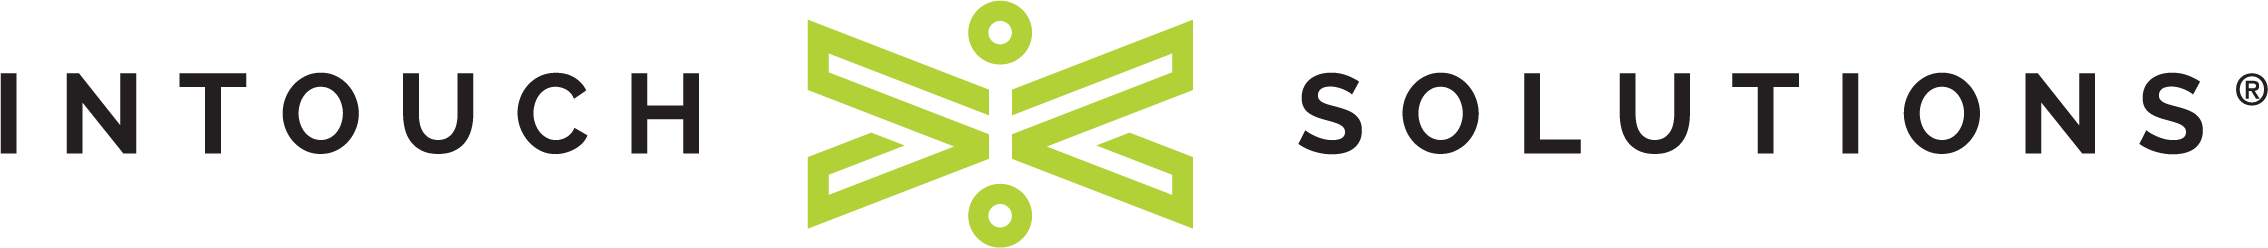 Intouch Solutions logo